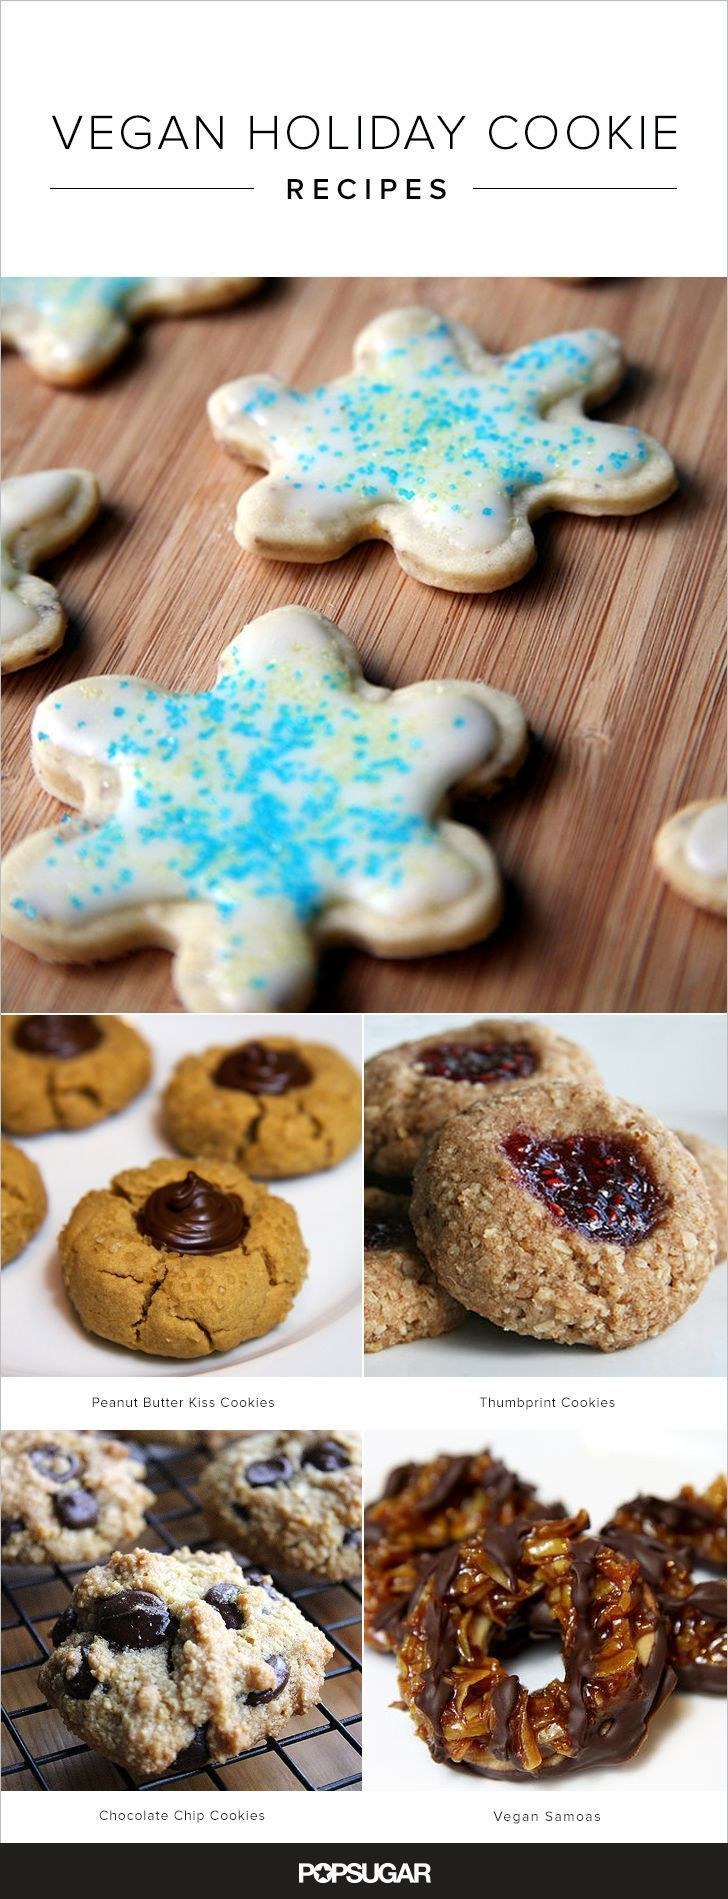 Take the holidays into your own hands and show up to any Christmukkuh party with a vegan plate of these cookies.